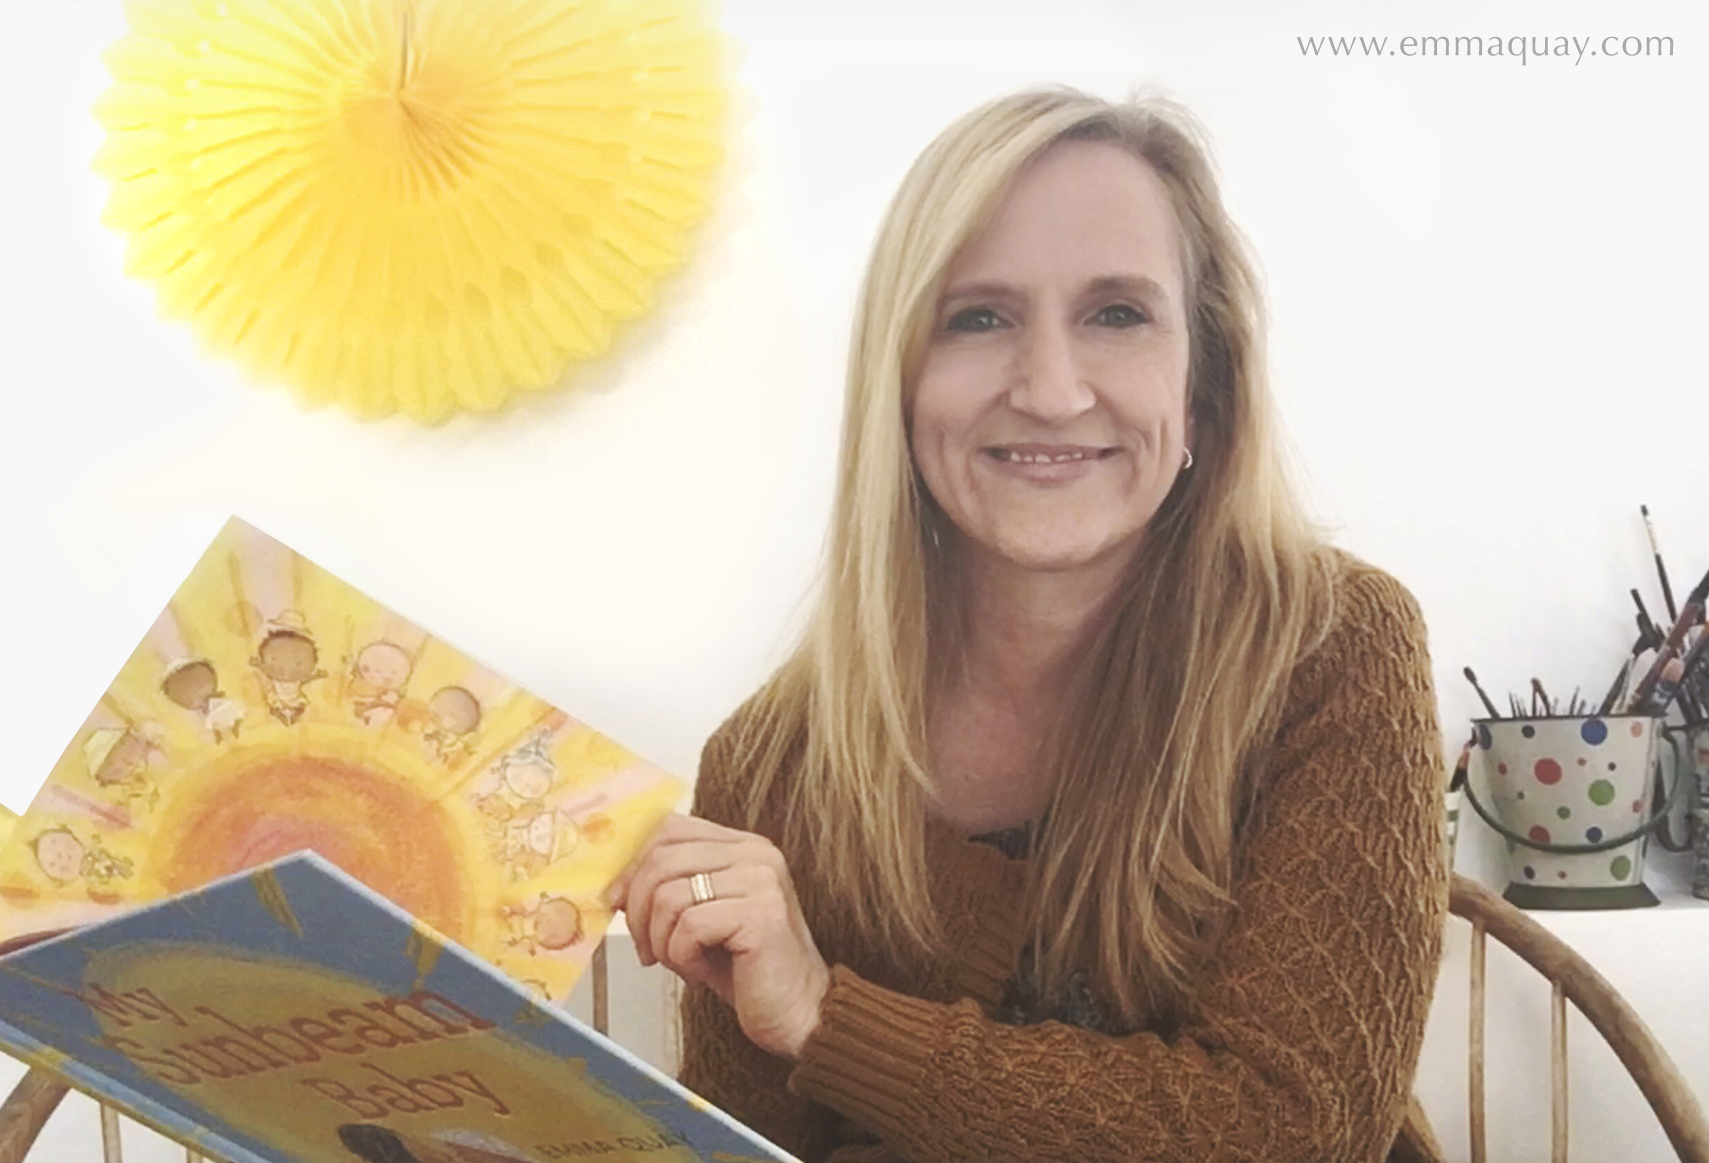 Emma Quay, illustrator and author, reading MY SUNBEAM BABY (ABC Books) - www.emmaquay.com